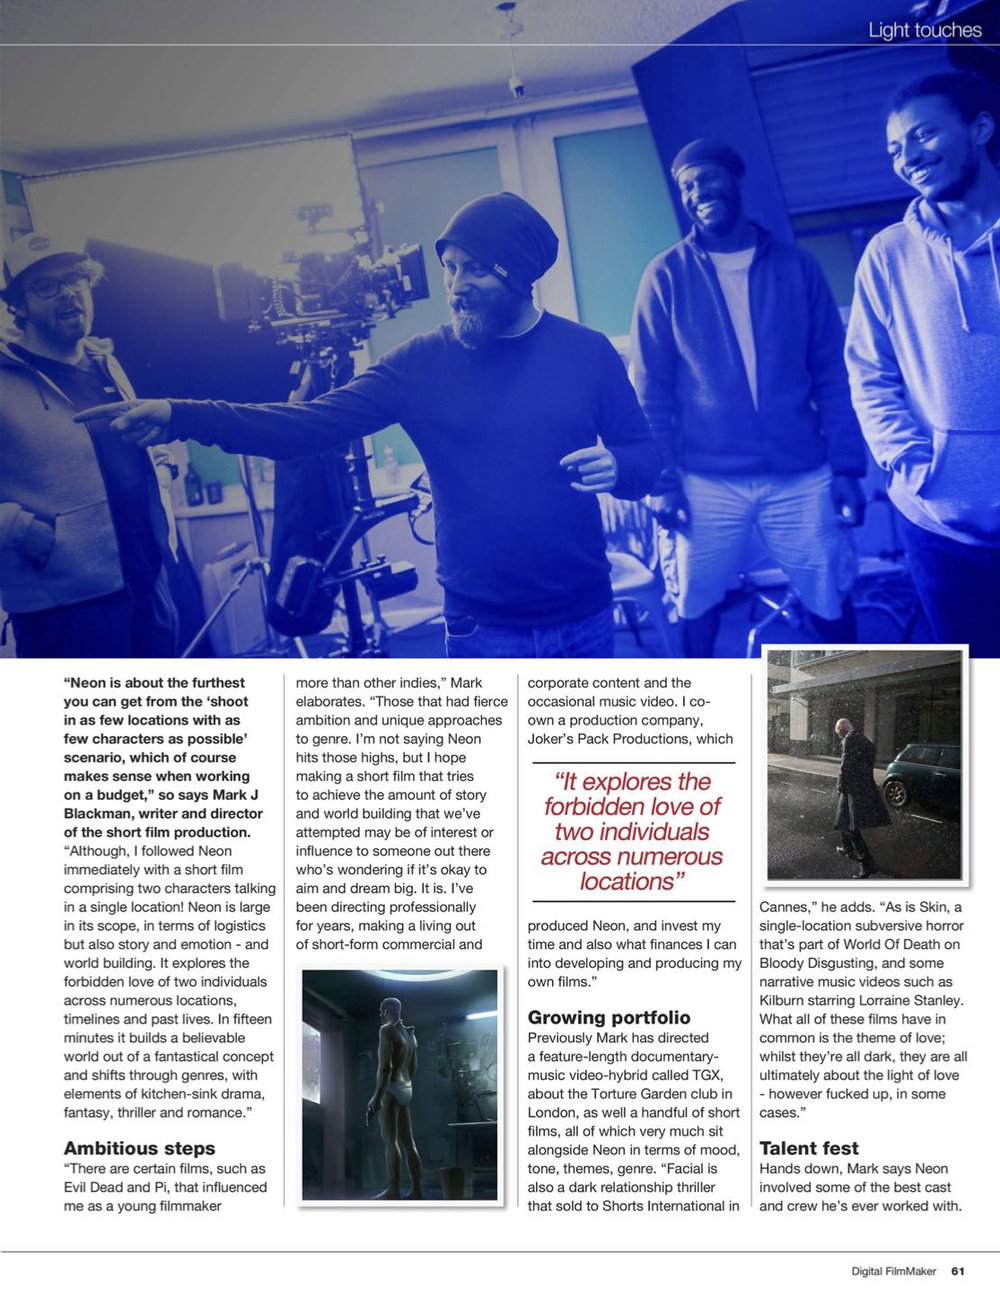 Neon - Digital Filmmaker spread (May 2018)_P2.jpg